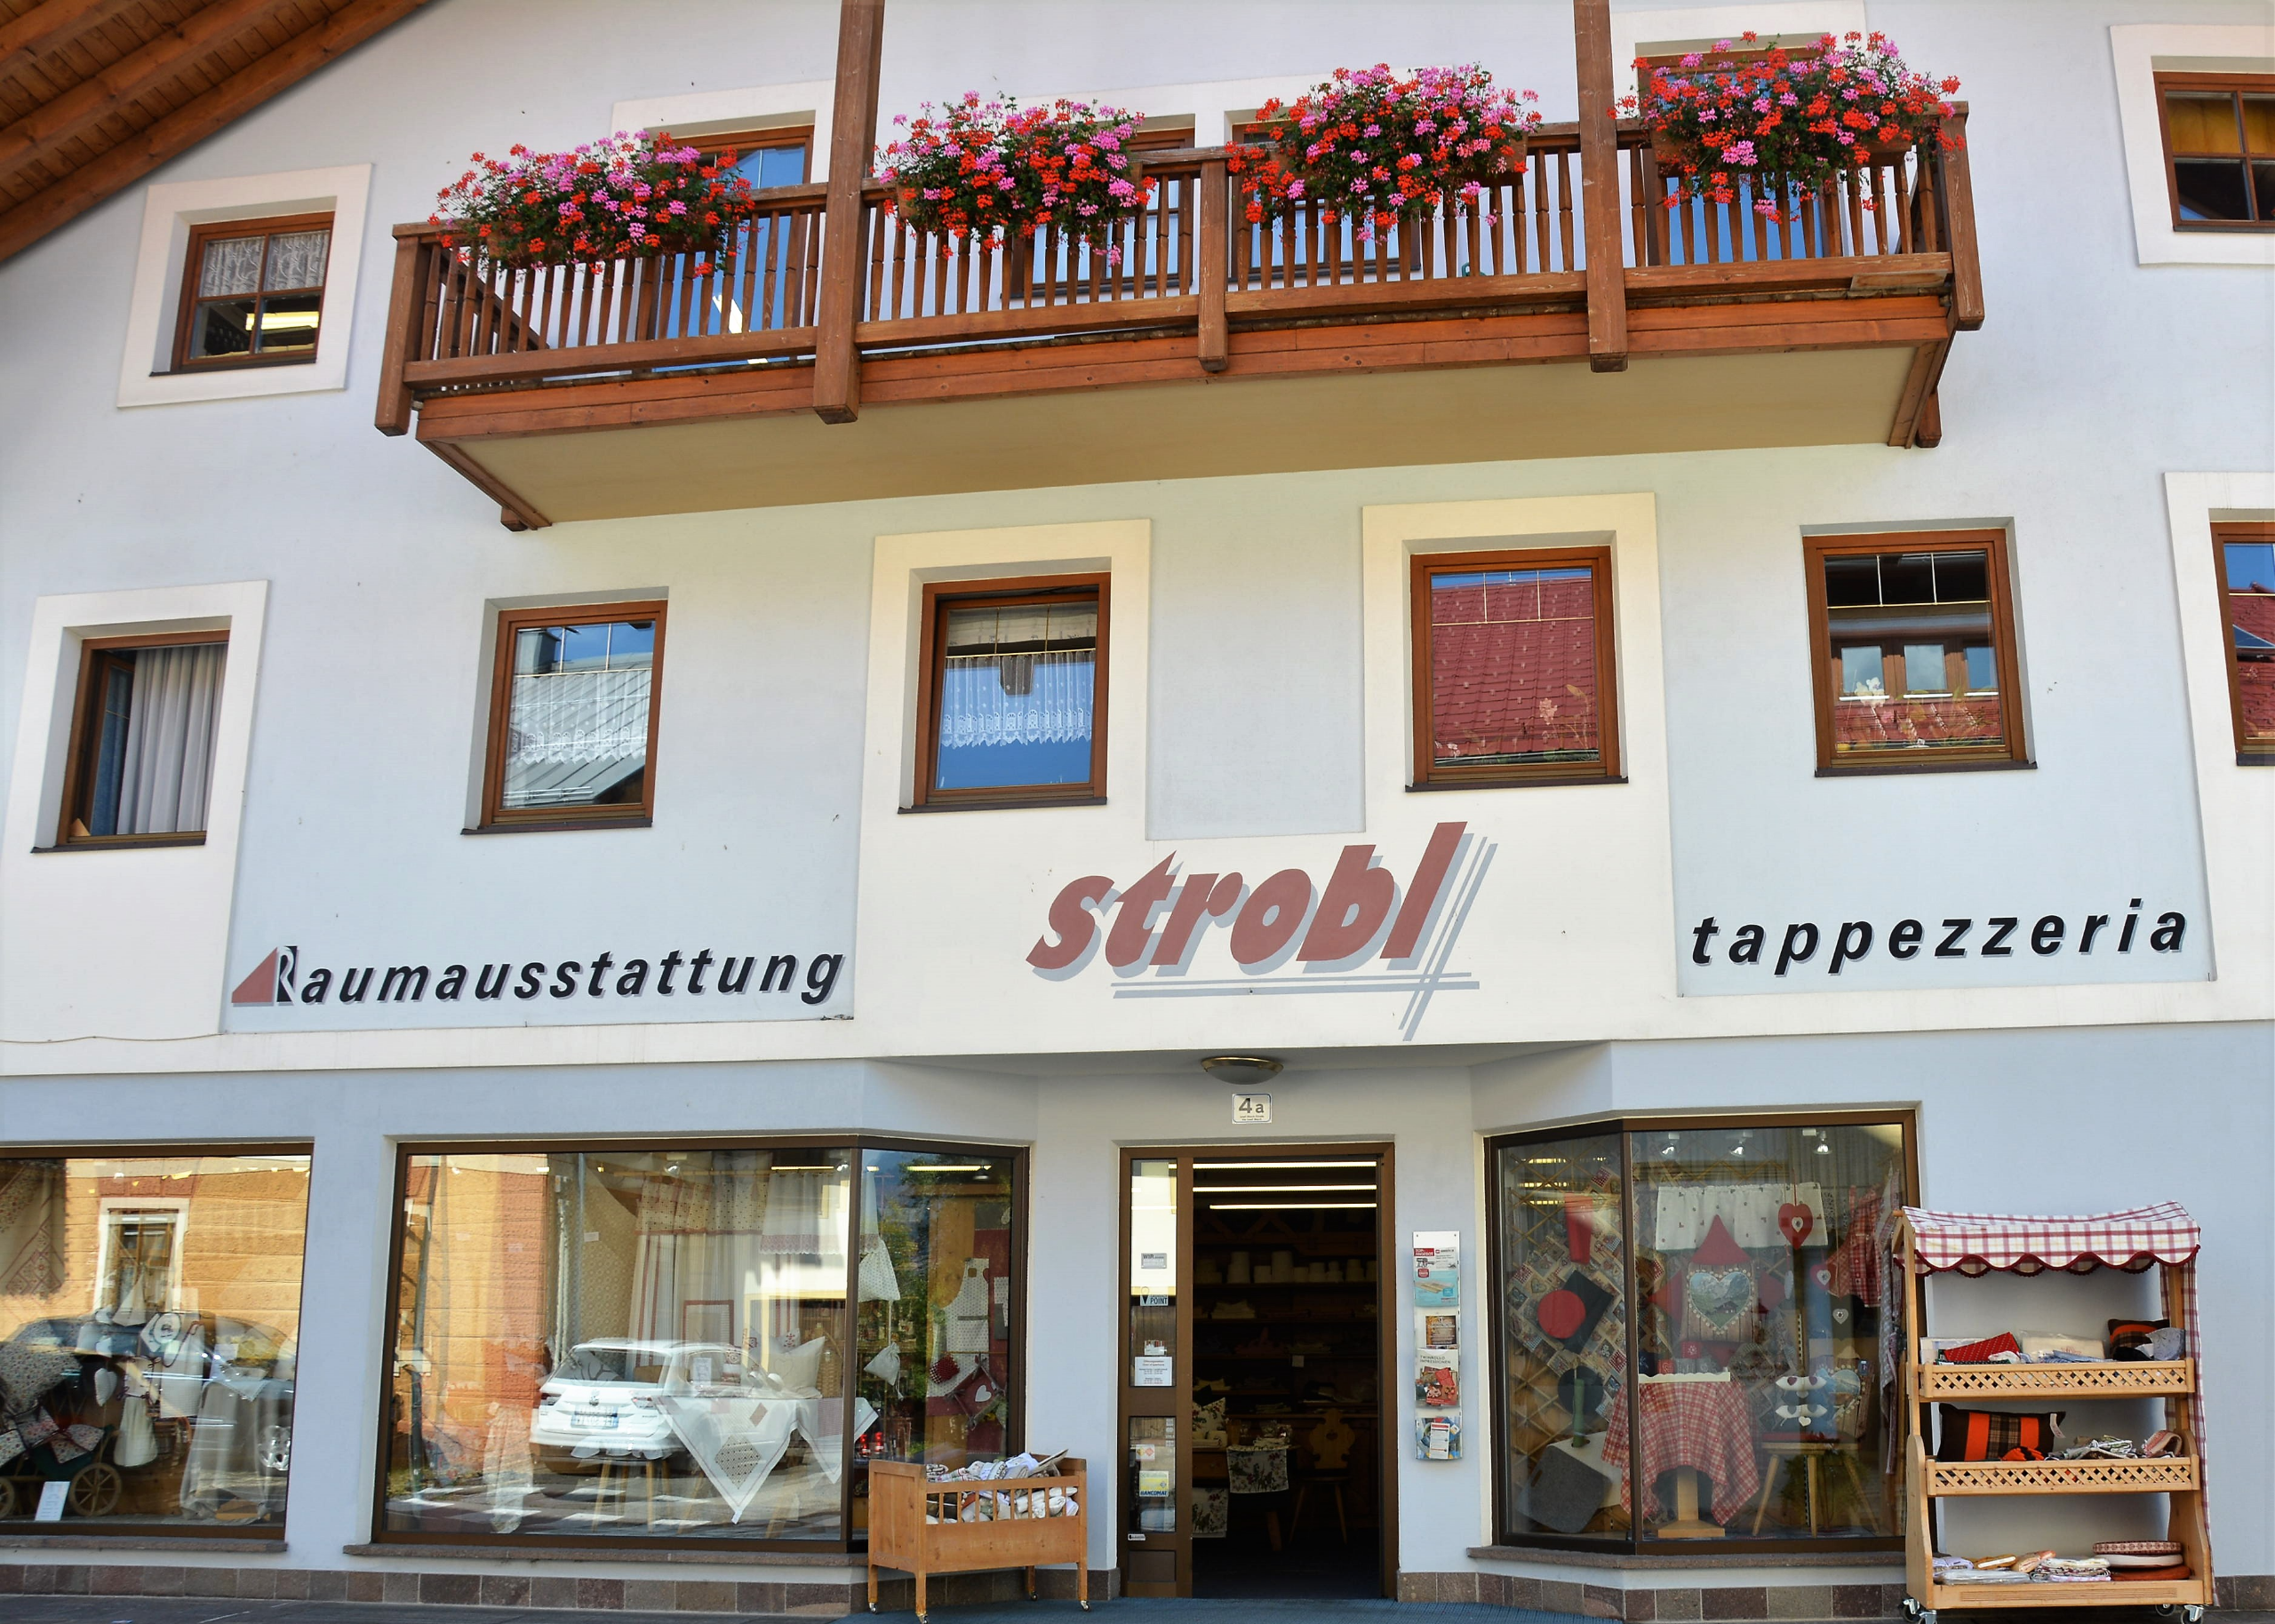 Strobl furnishings and upholstery